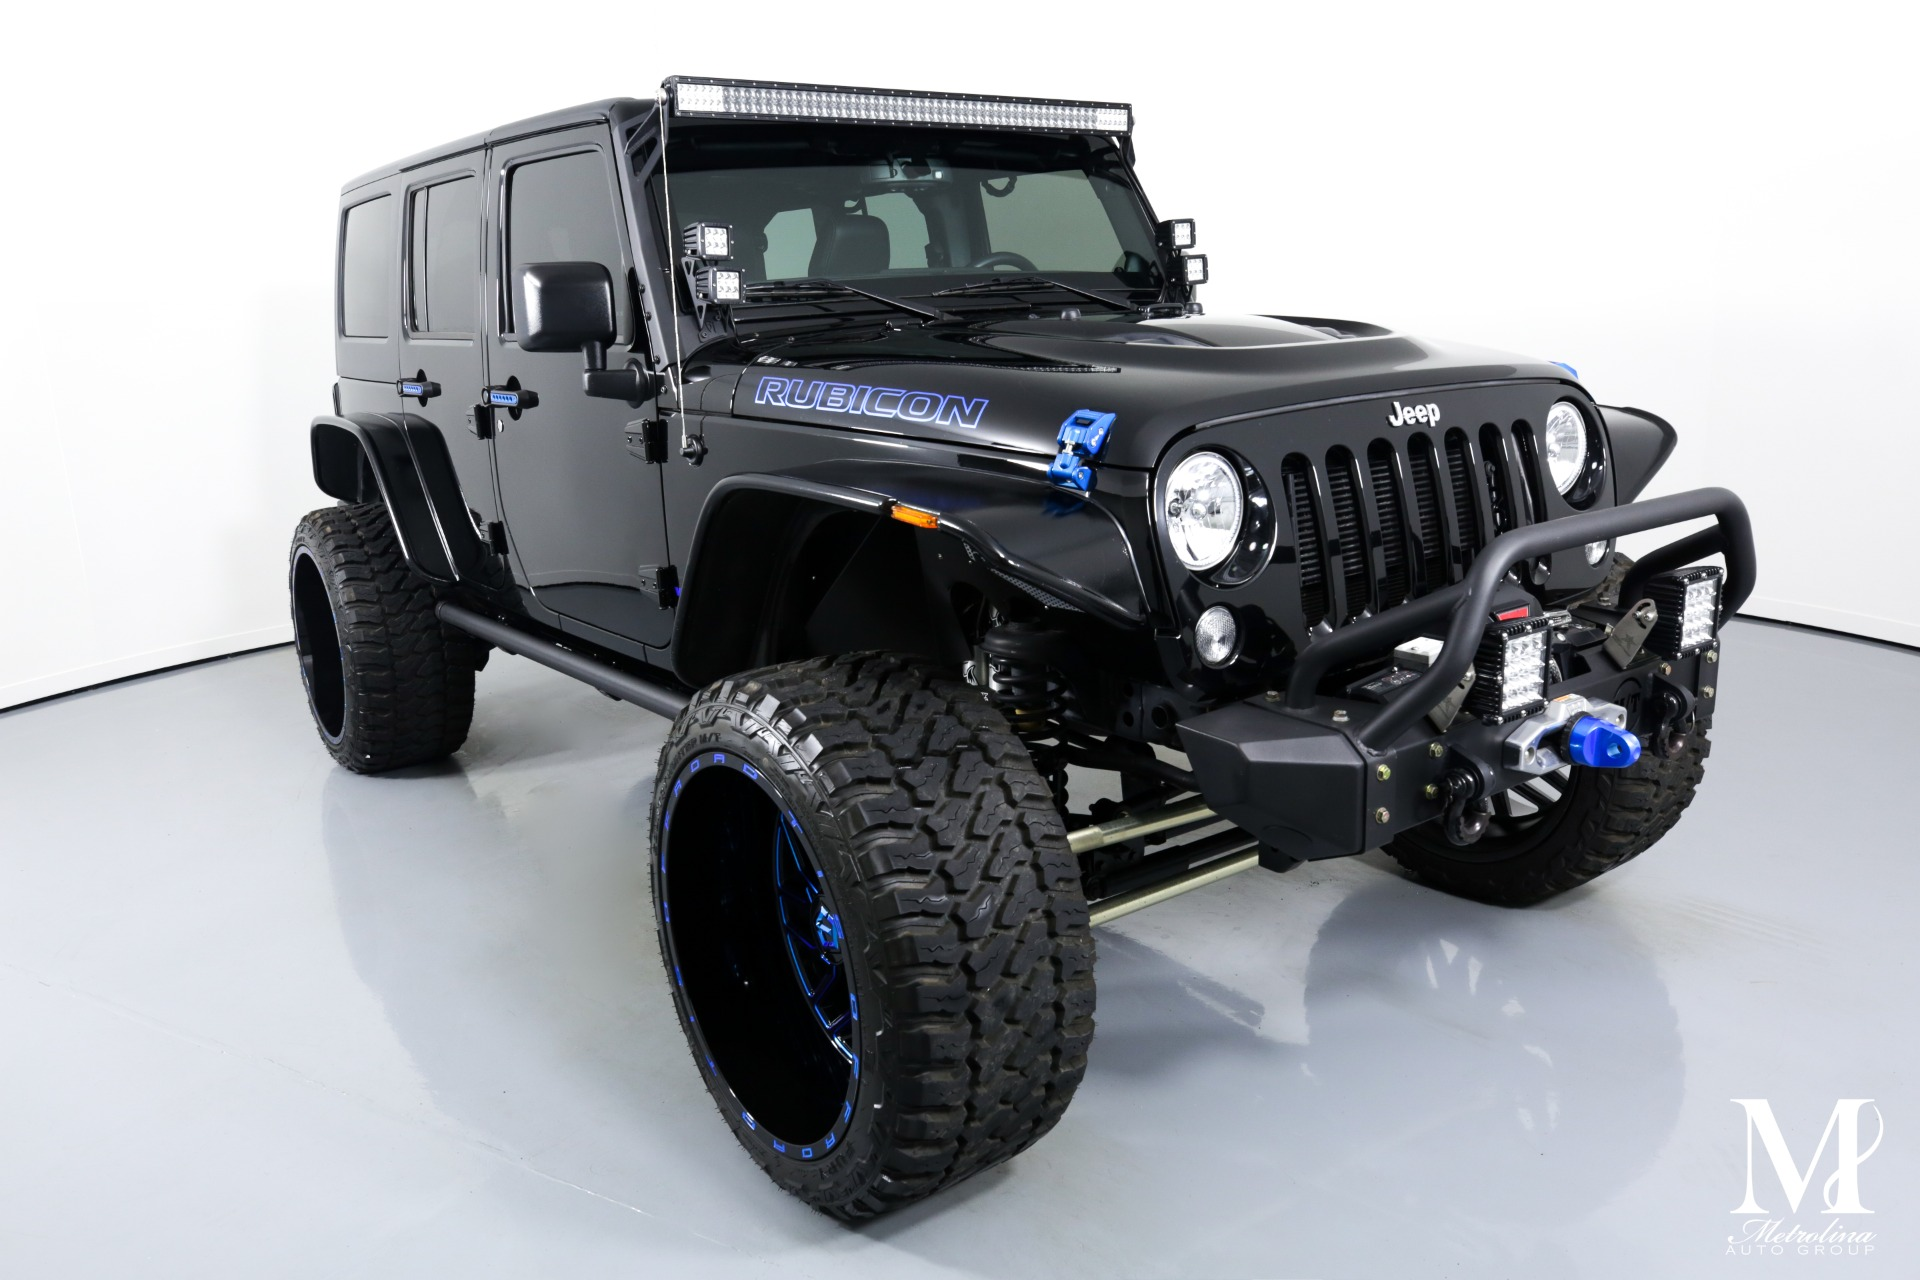 Used 2014 Jeep Wrangler Unlimited Rubicon for sale $47,996 at Metrolina Auto Group in Charlotte NC 28217 - 2